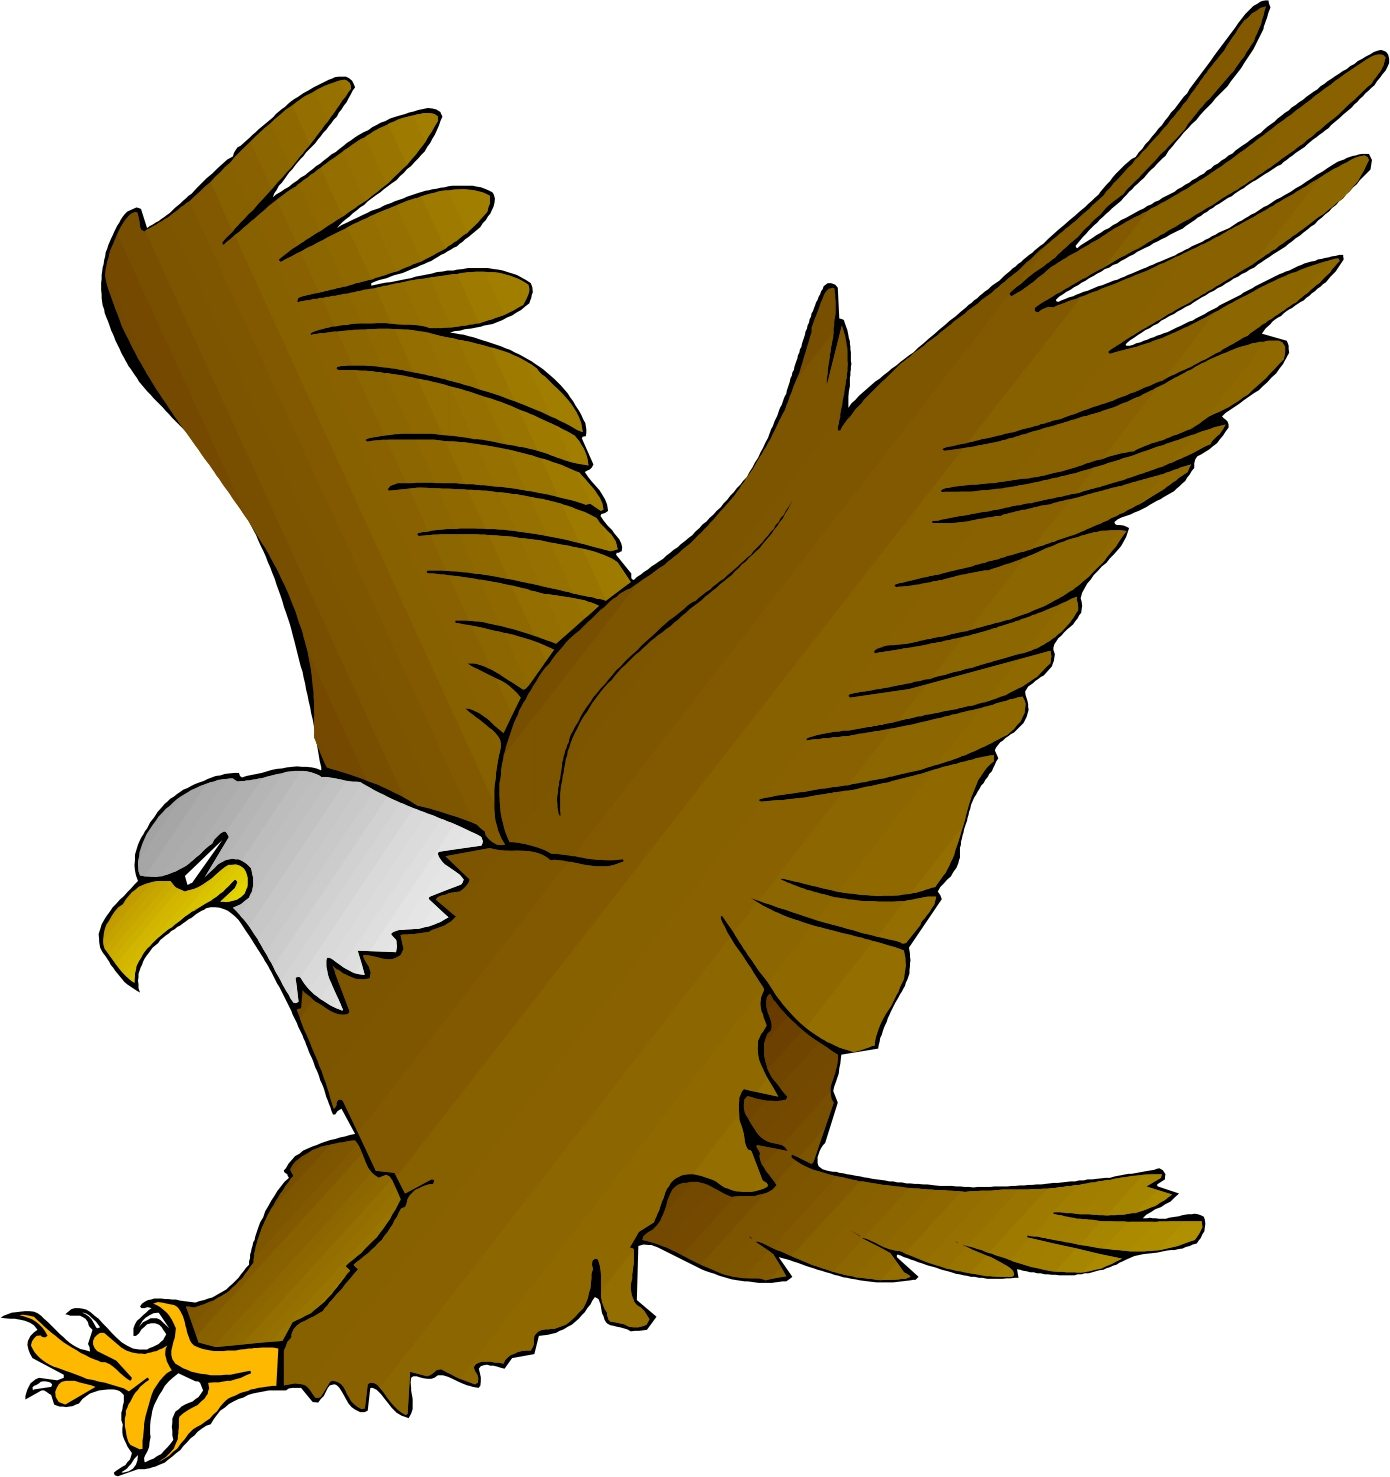 Eagle clipart cartoon image freeuse library Cartoon Eagle Clipart - Amos Elementary image freeuse library